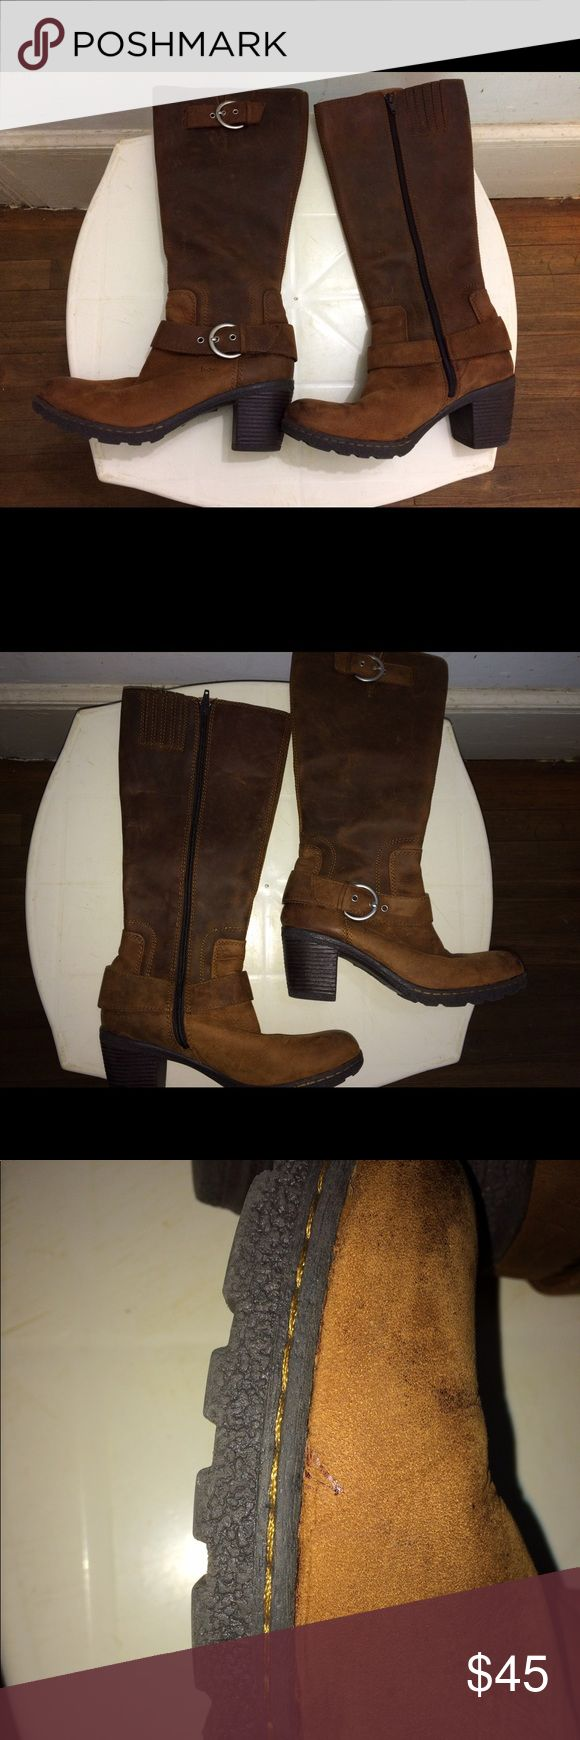 Women's Boc Born concepts Boots Hi Poshers, selling a pair size 8.5 Born Concepts cowboy boots. Barely used once as you can see the bottom of the boots. Their over the calf, zip up brown leather boots. Thanks for looking! Born Concepts Shoes Combat & Moto Boots